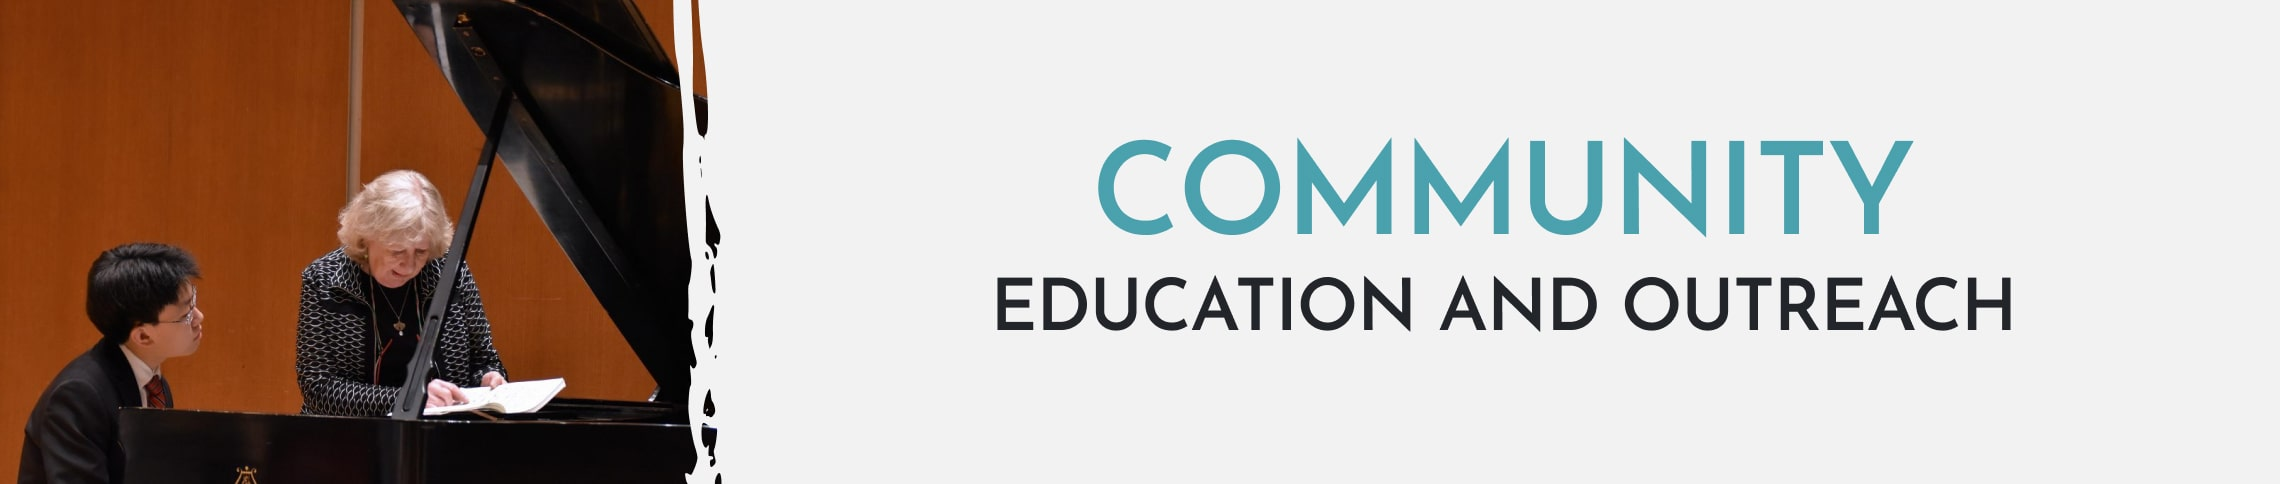 community education and outreach through competitions and events